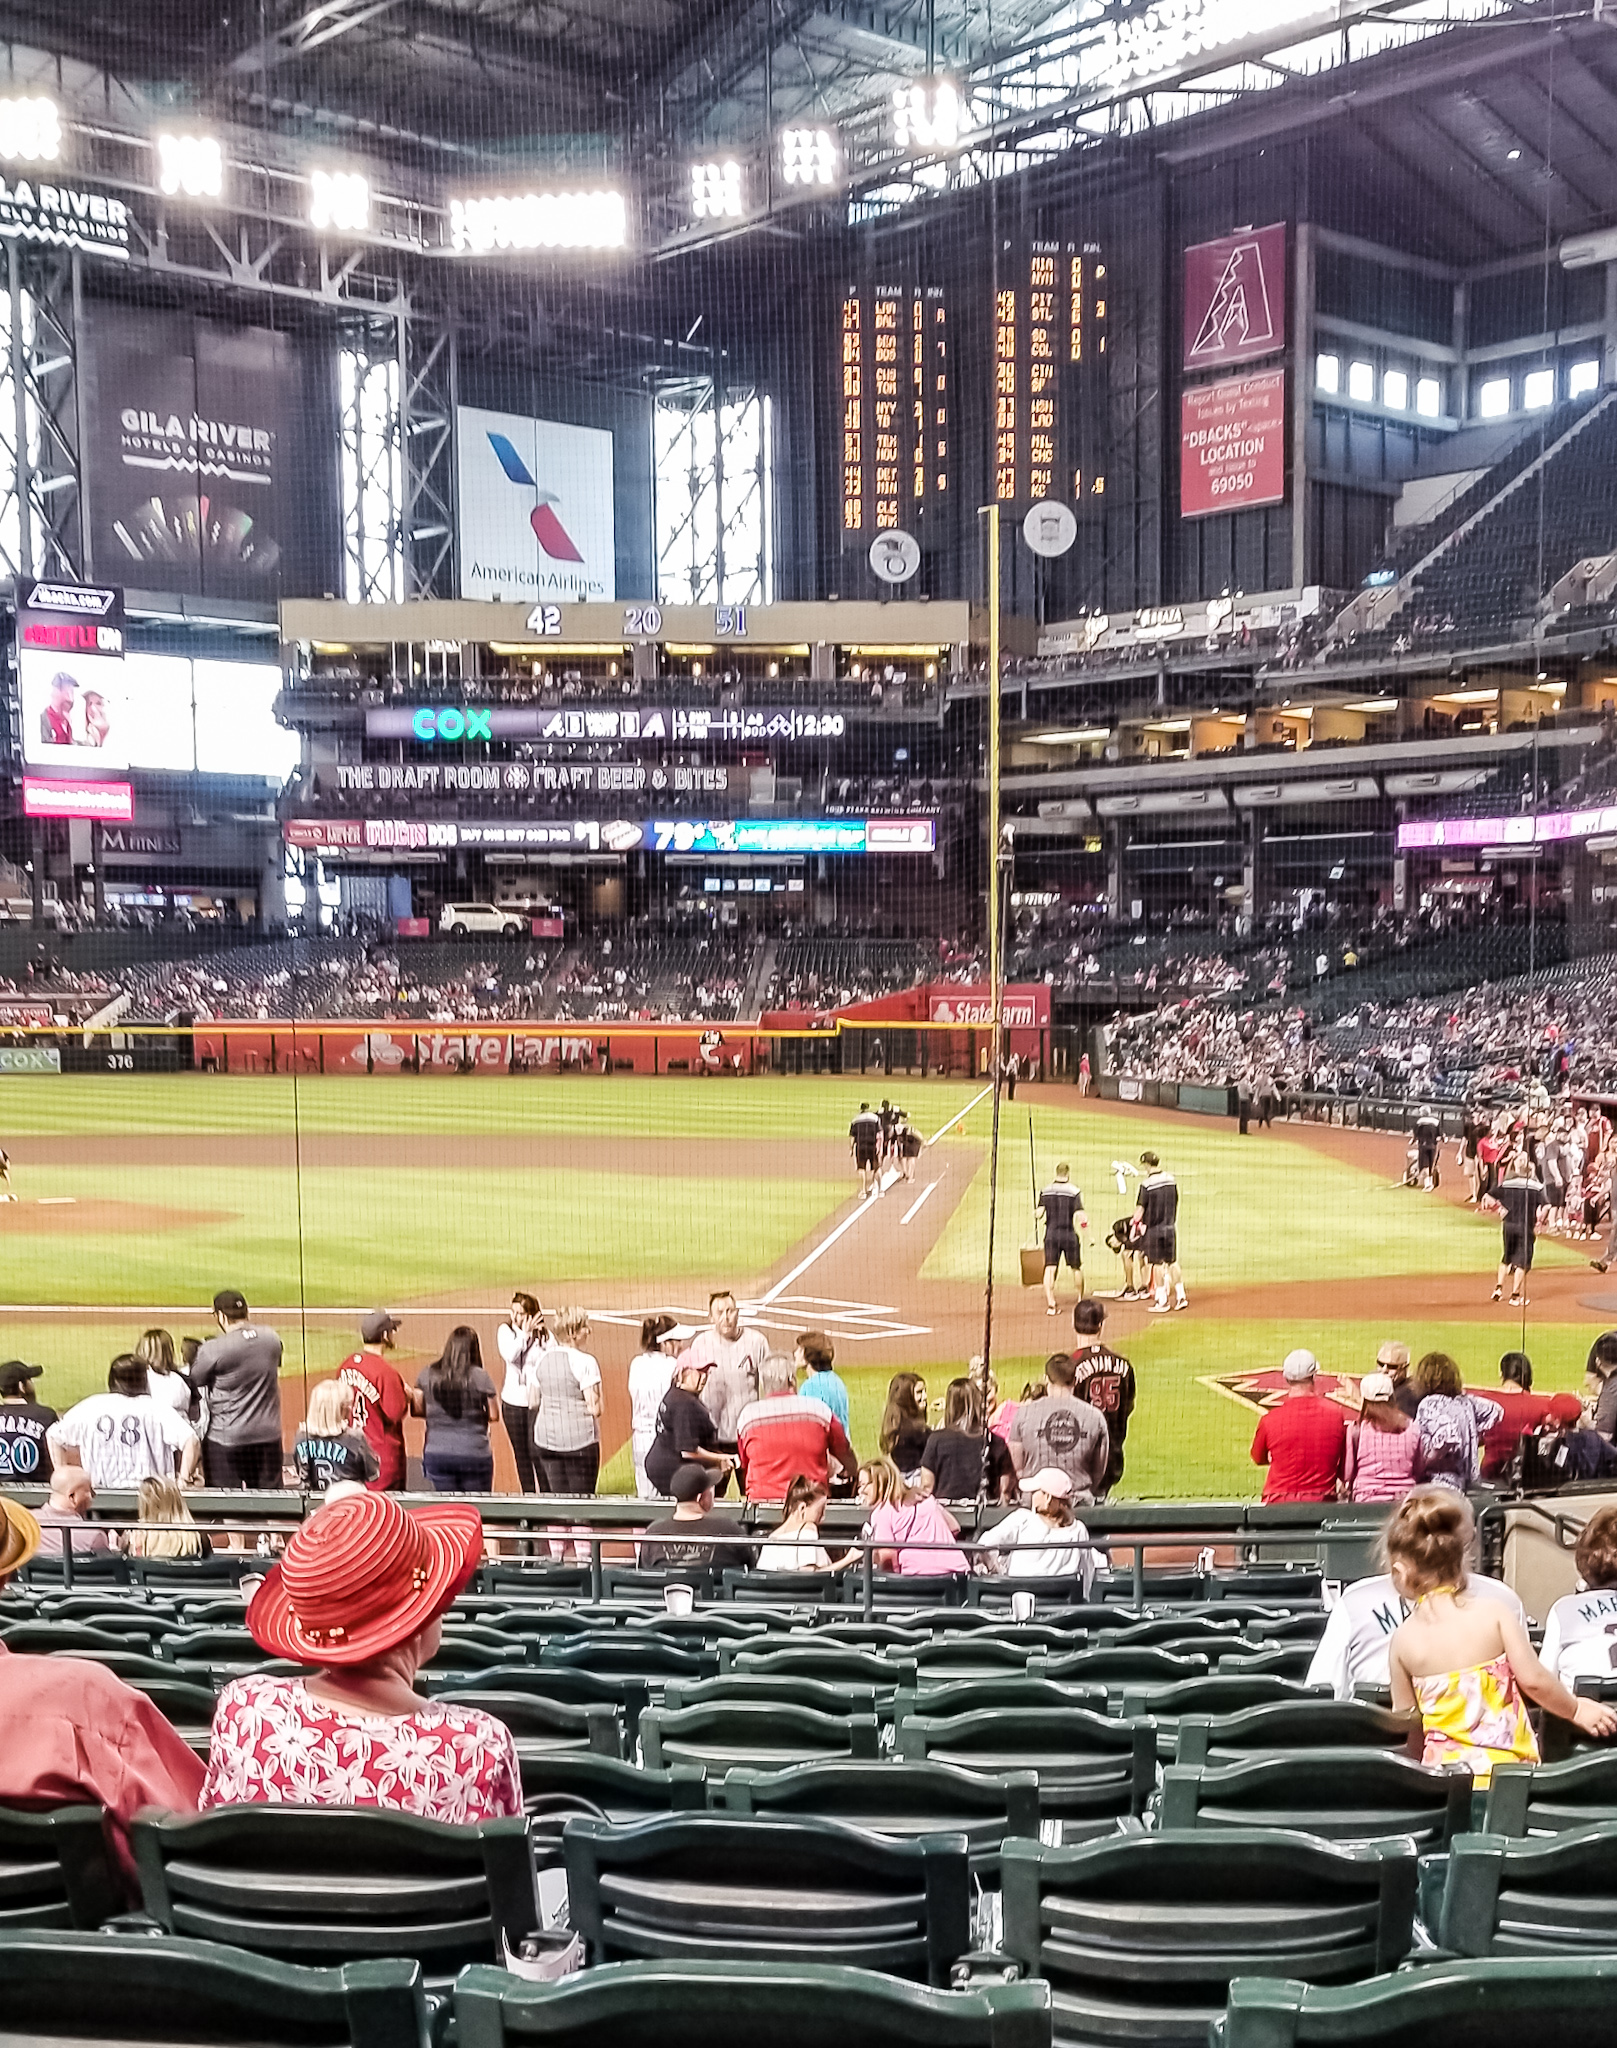 A baseball game with the family is a great way to get out and explore a new city